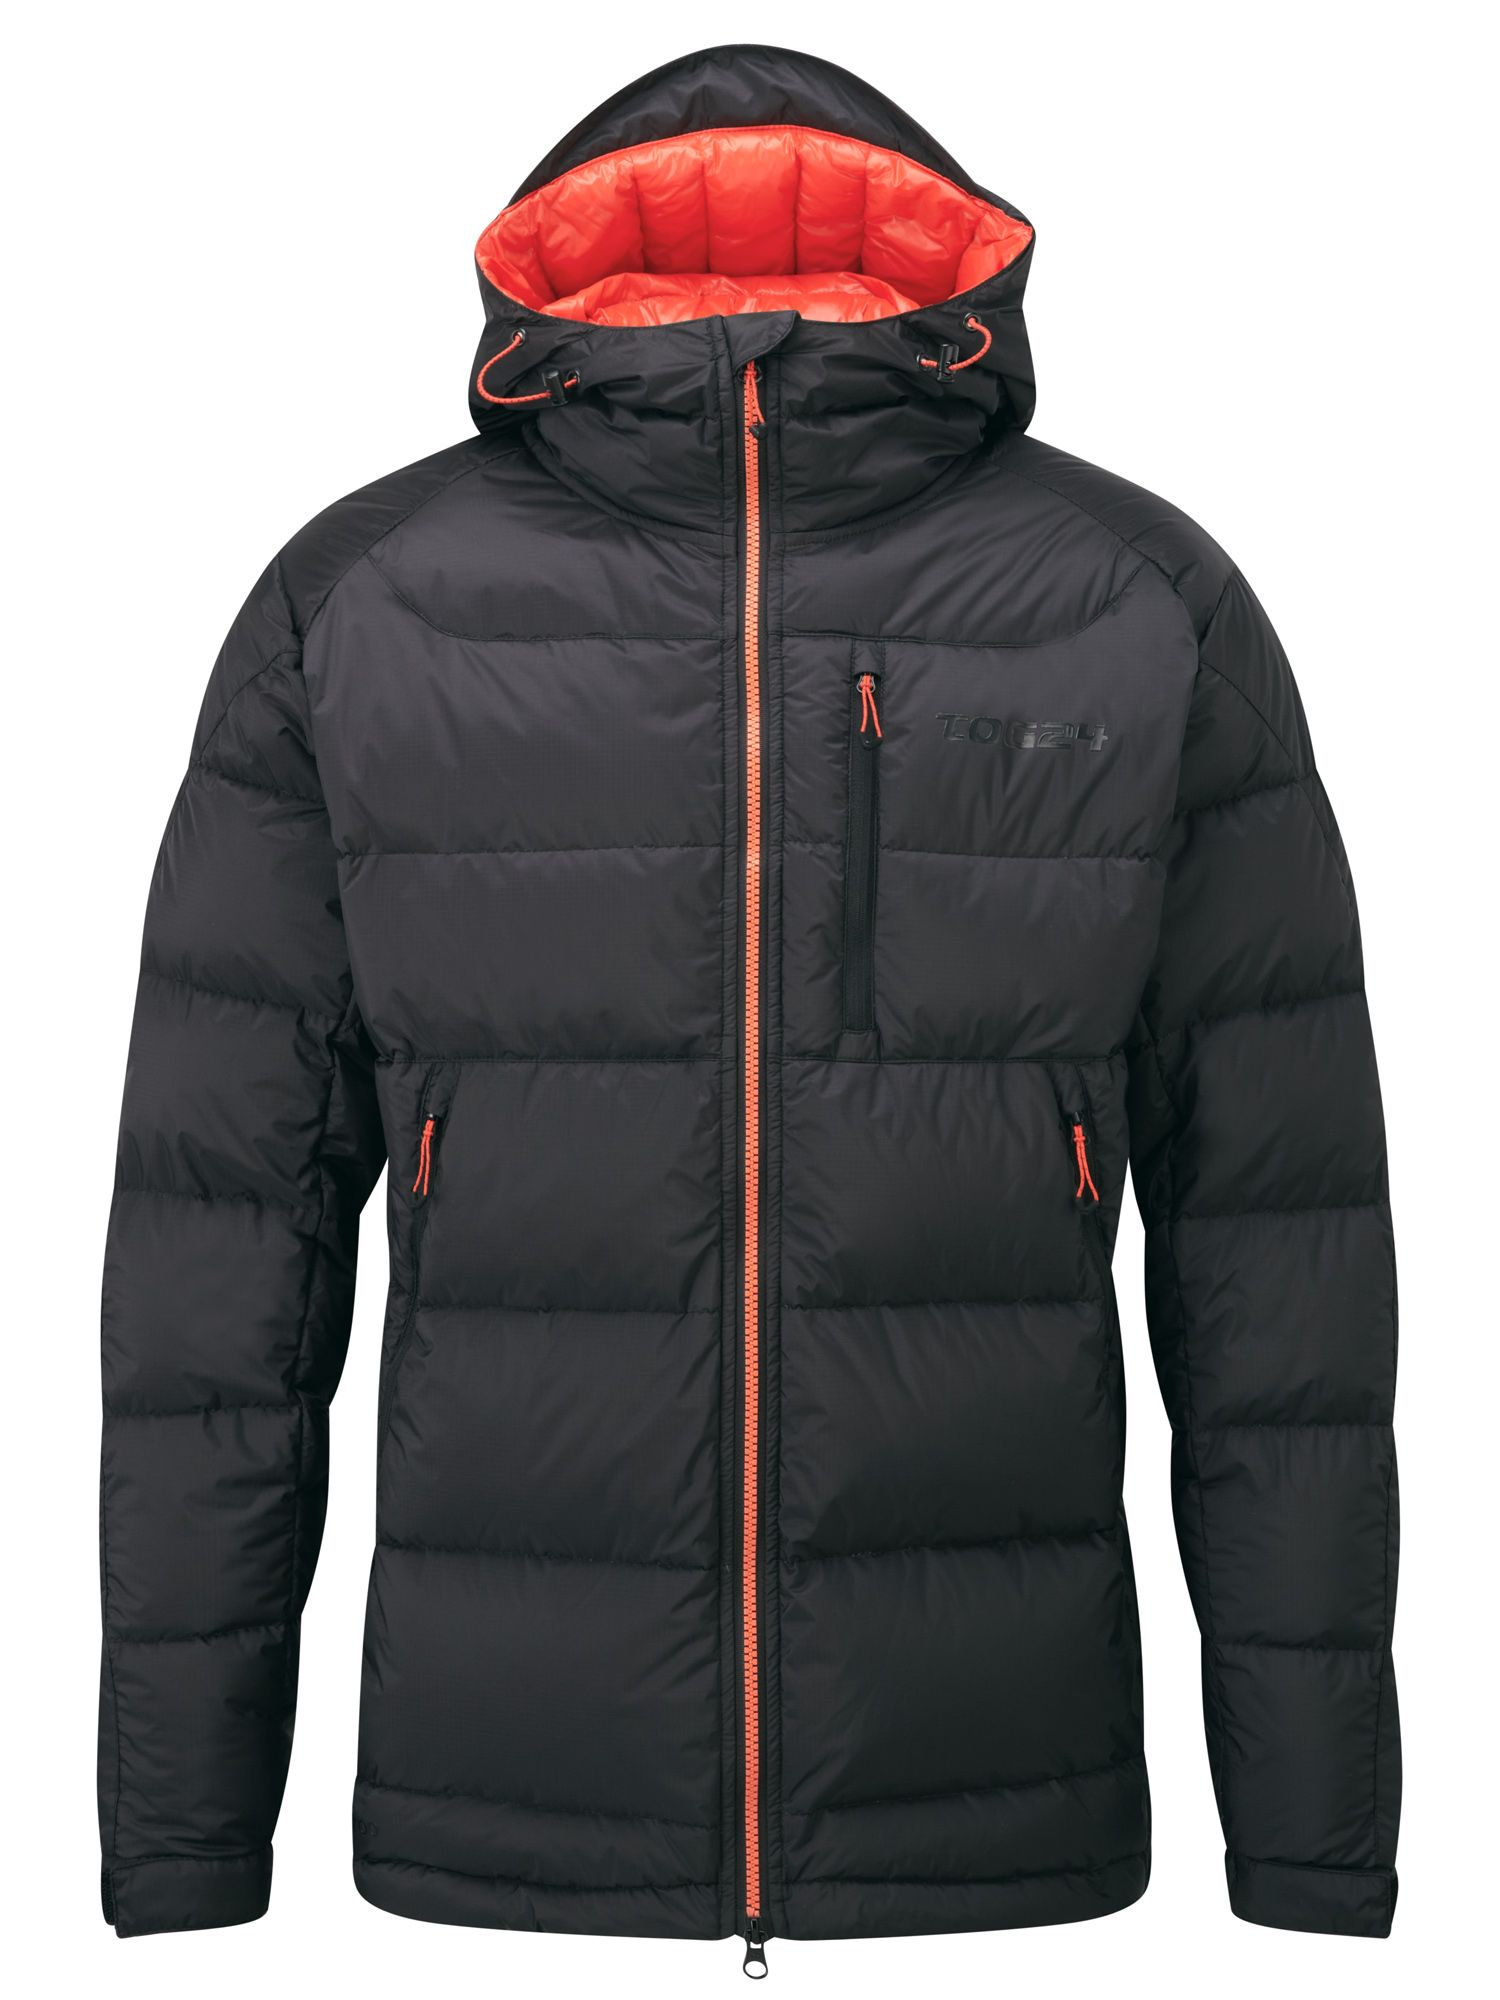 Buy Cheap Mens Down Jacket Compare Men S Outerwear